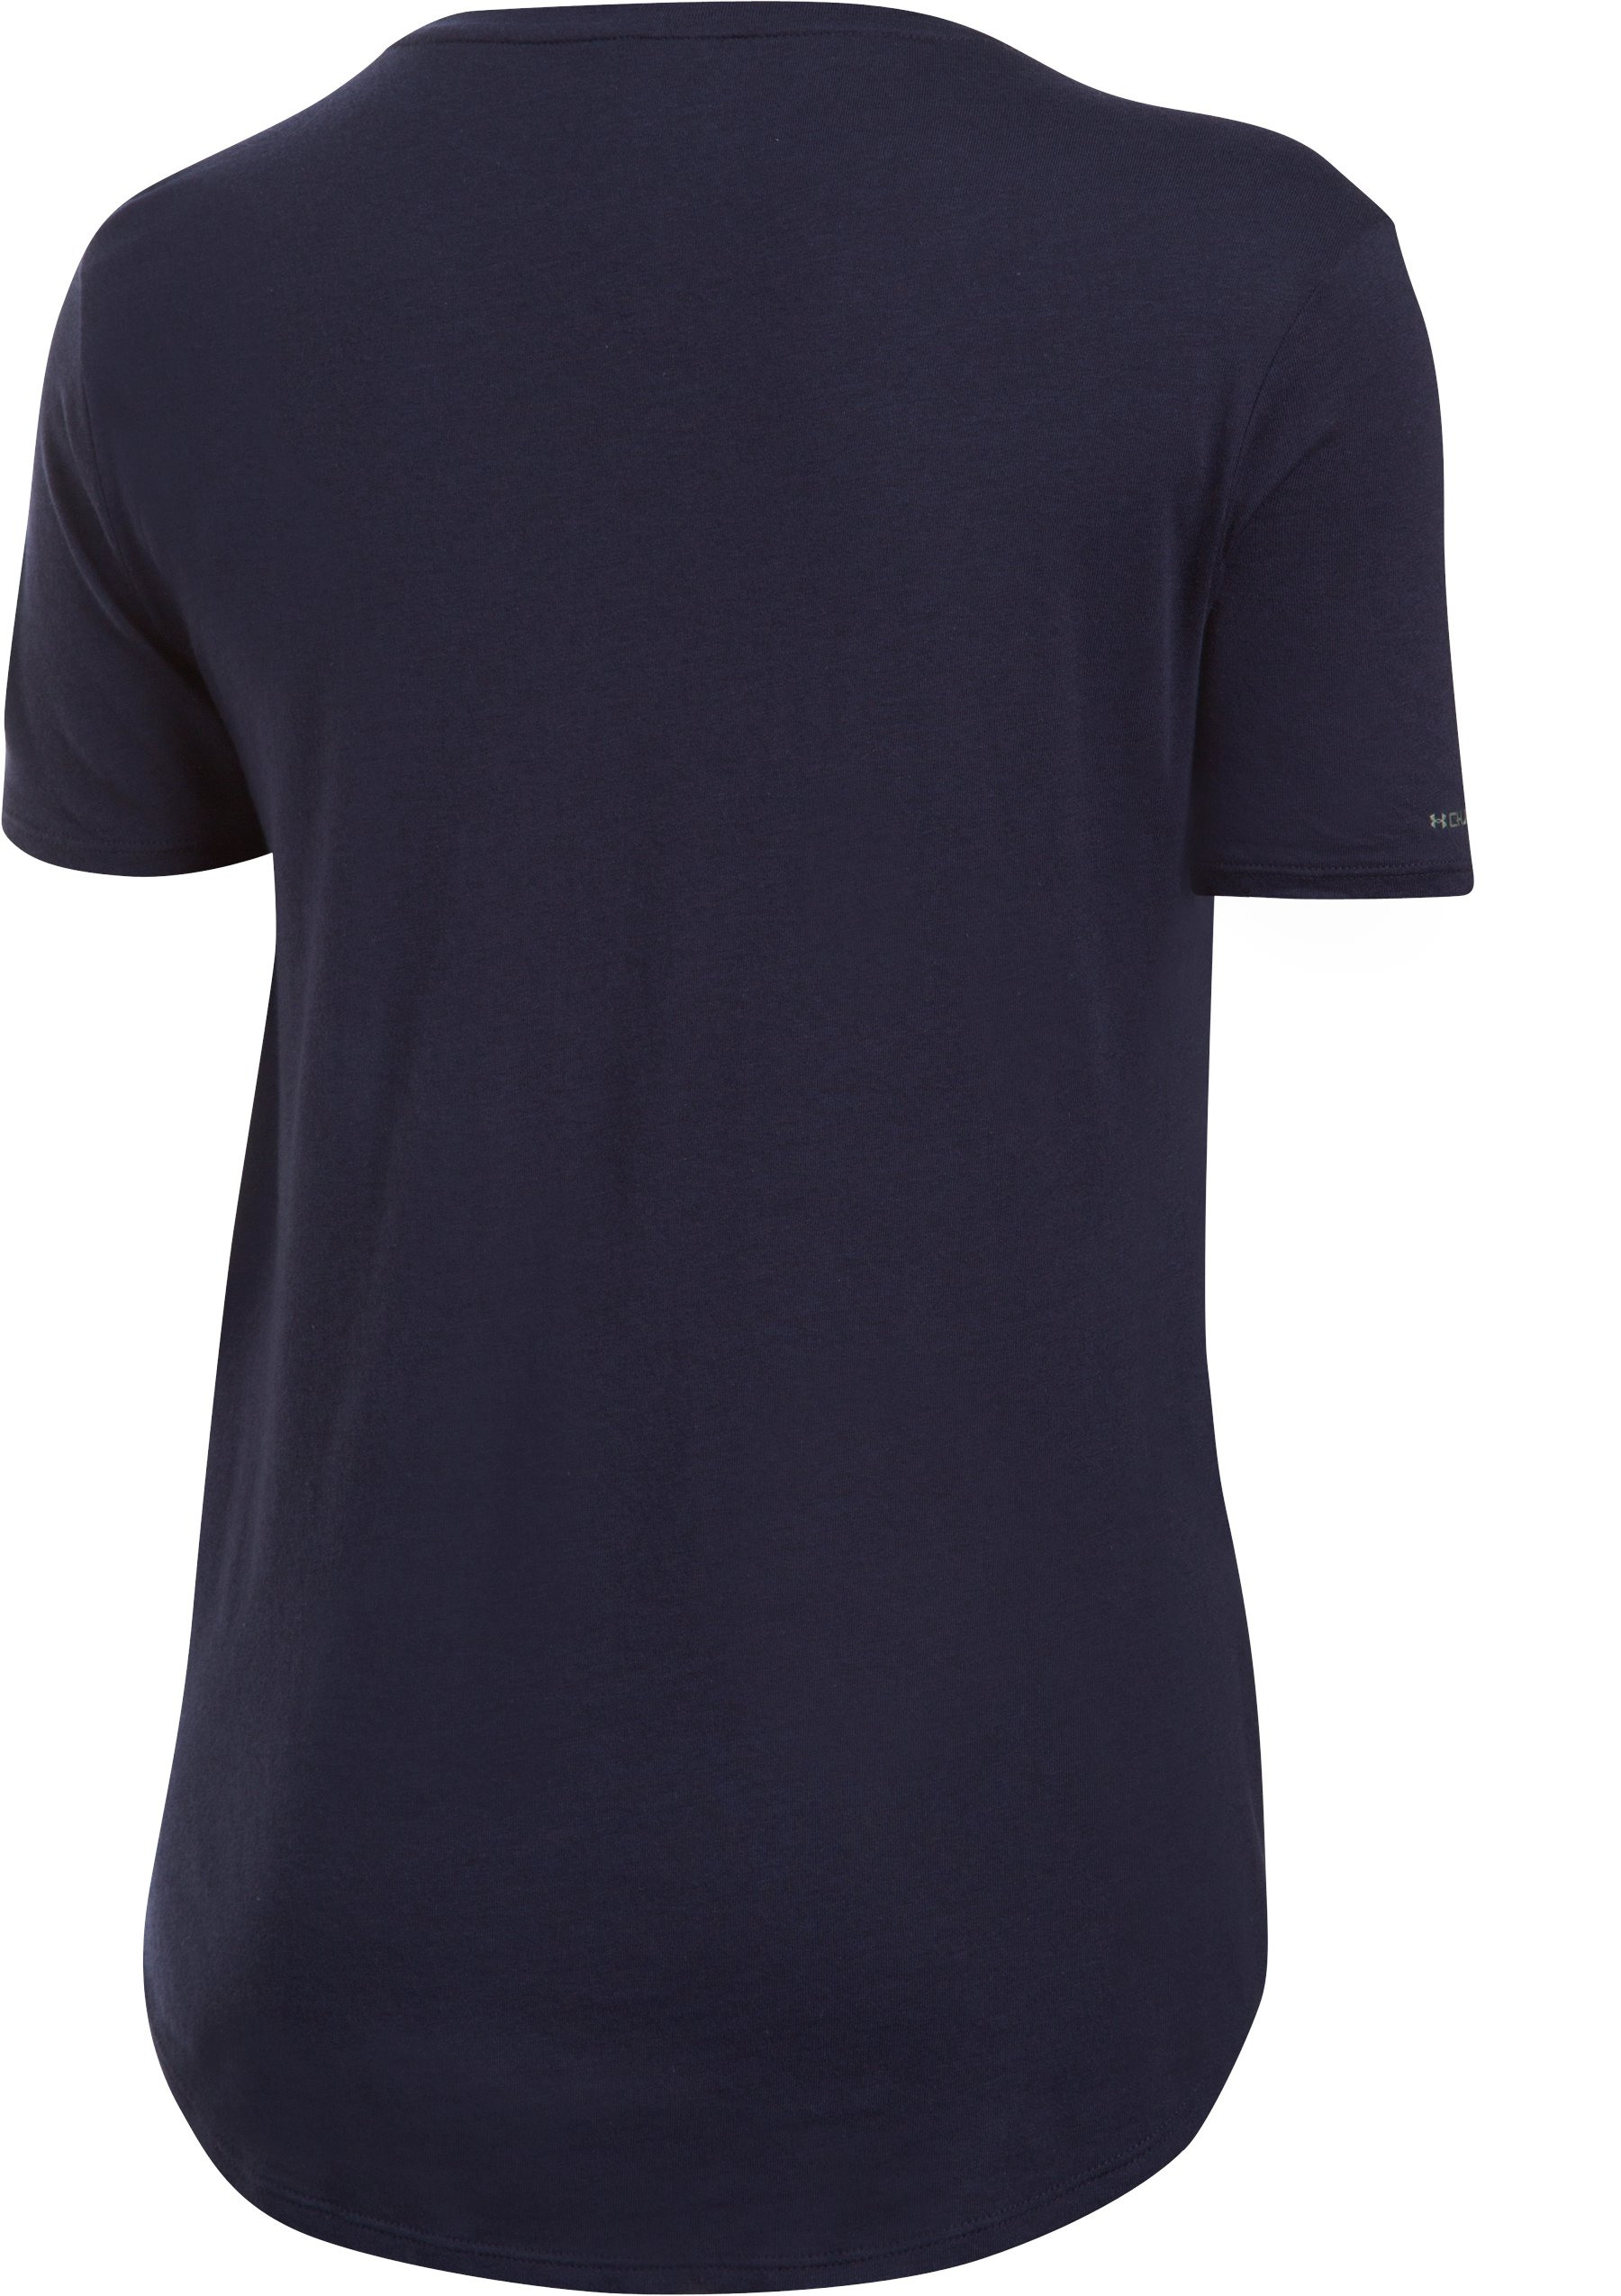 Women's Notre Dame Charged Cotton® Short Sleeve T-Shirt, Midnight Navy,